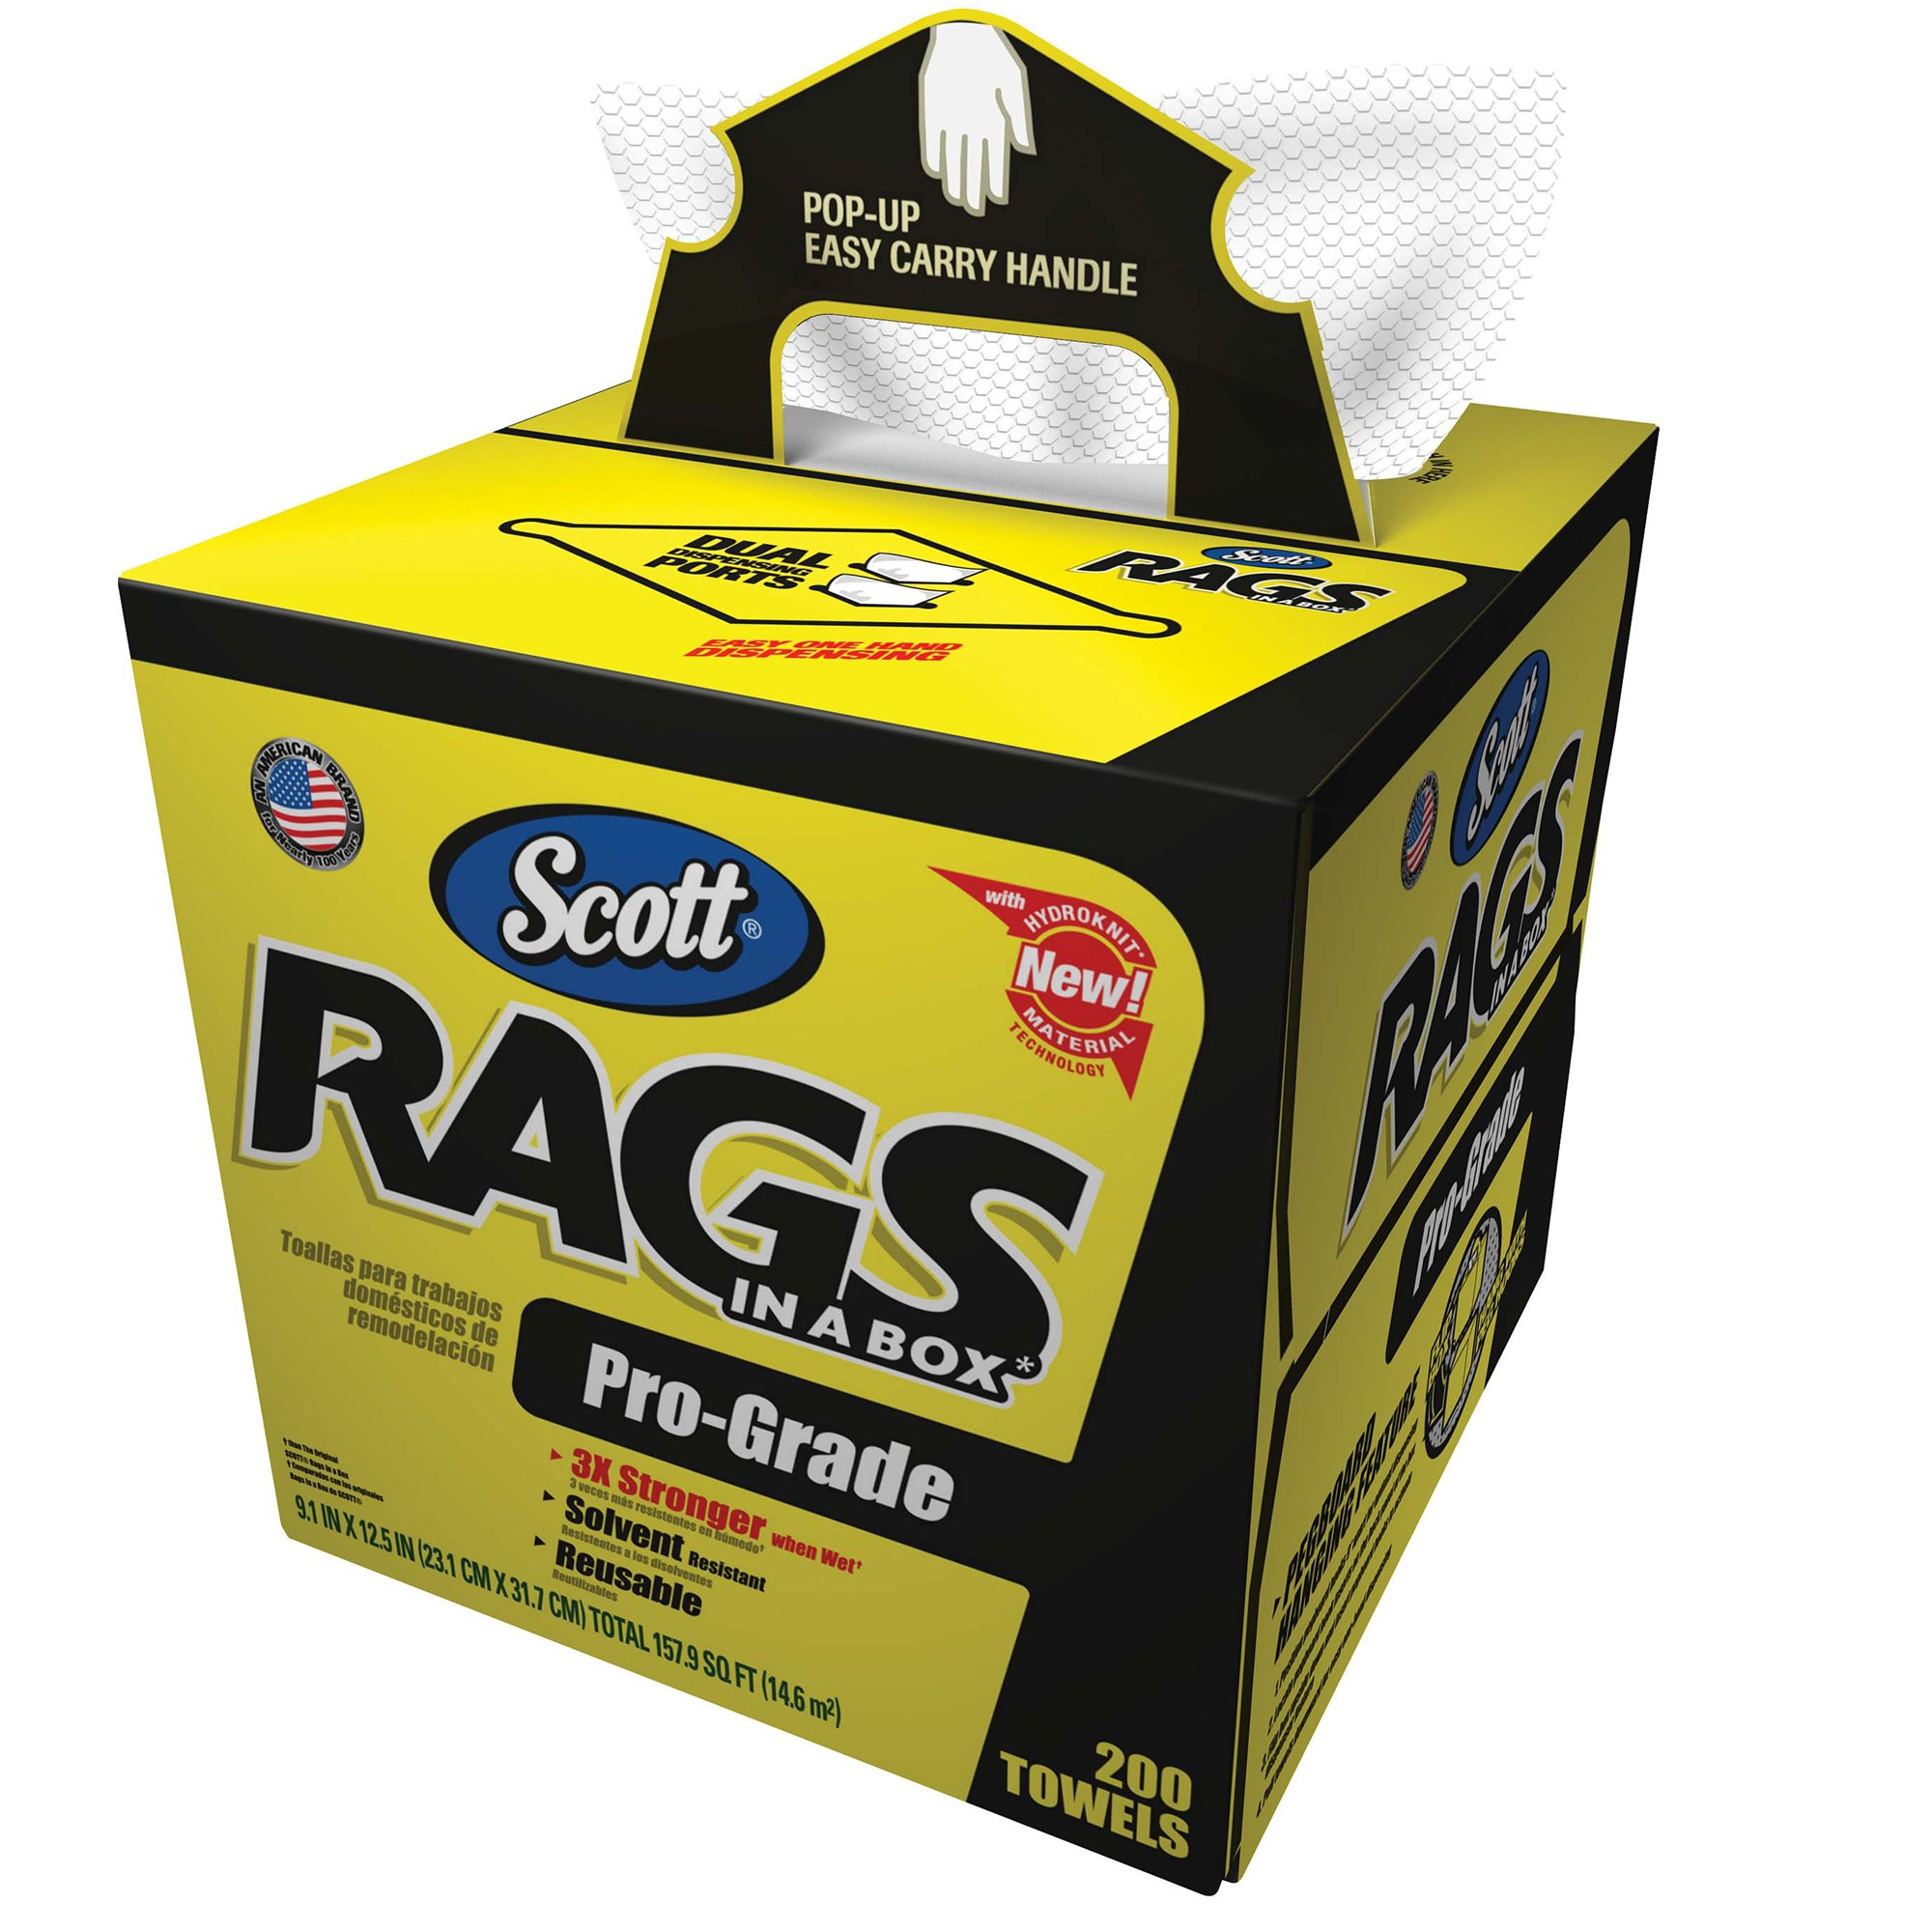 Scott Pro Grade Rags In A Box (39364), Shop Towels for Solvents & Heavy-Duty Jobs, White, 200 Wipes / POP-UP Box by Kimberly-Clark Professional